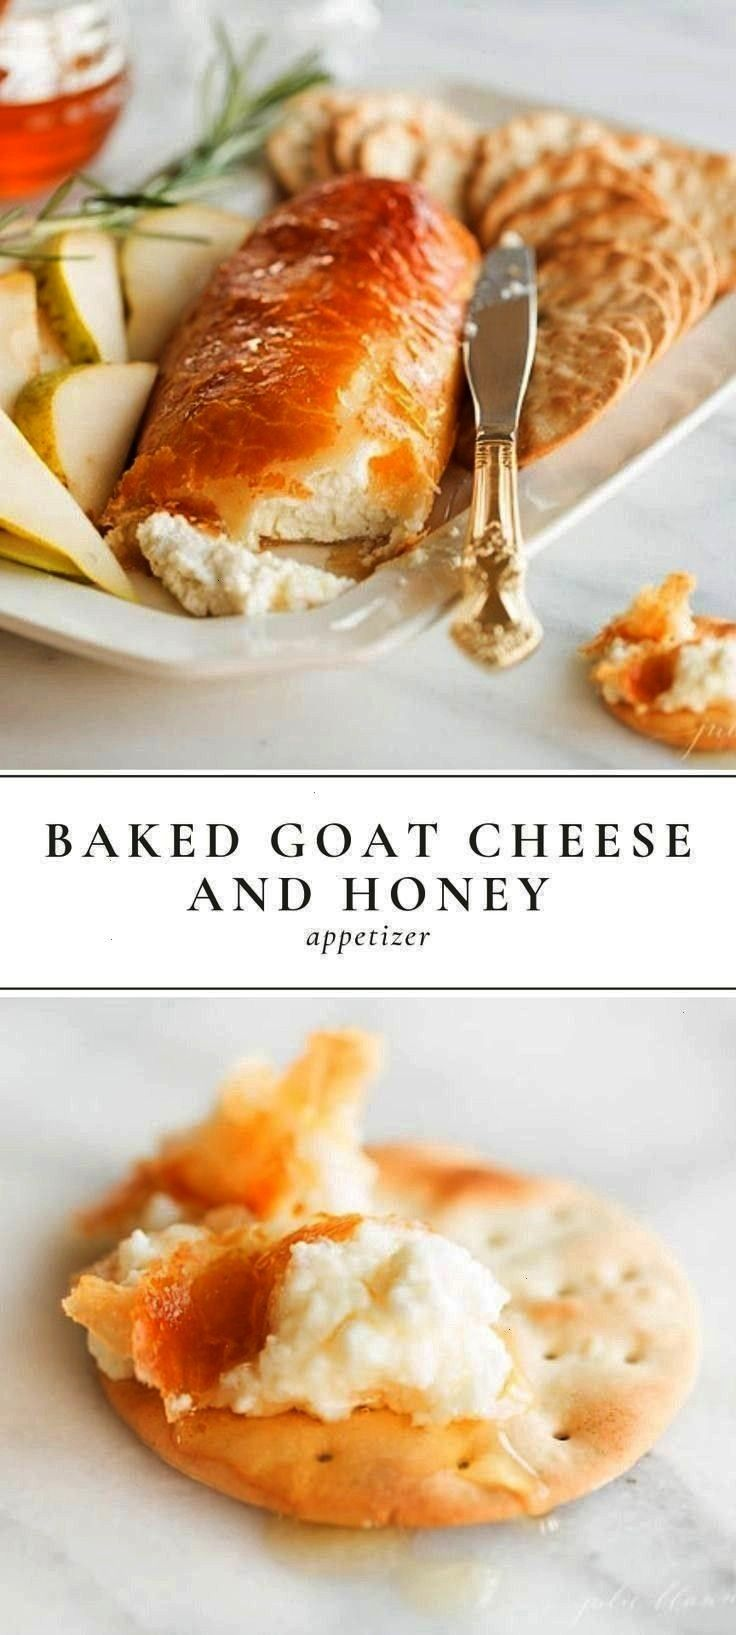 baked goat cheese and honey appetizer recipe that looks as g... Easy crowd pleasing baked goat chee